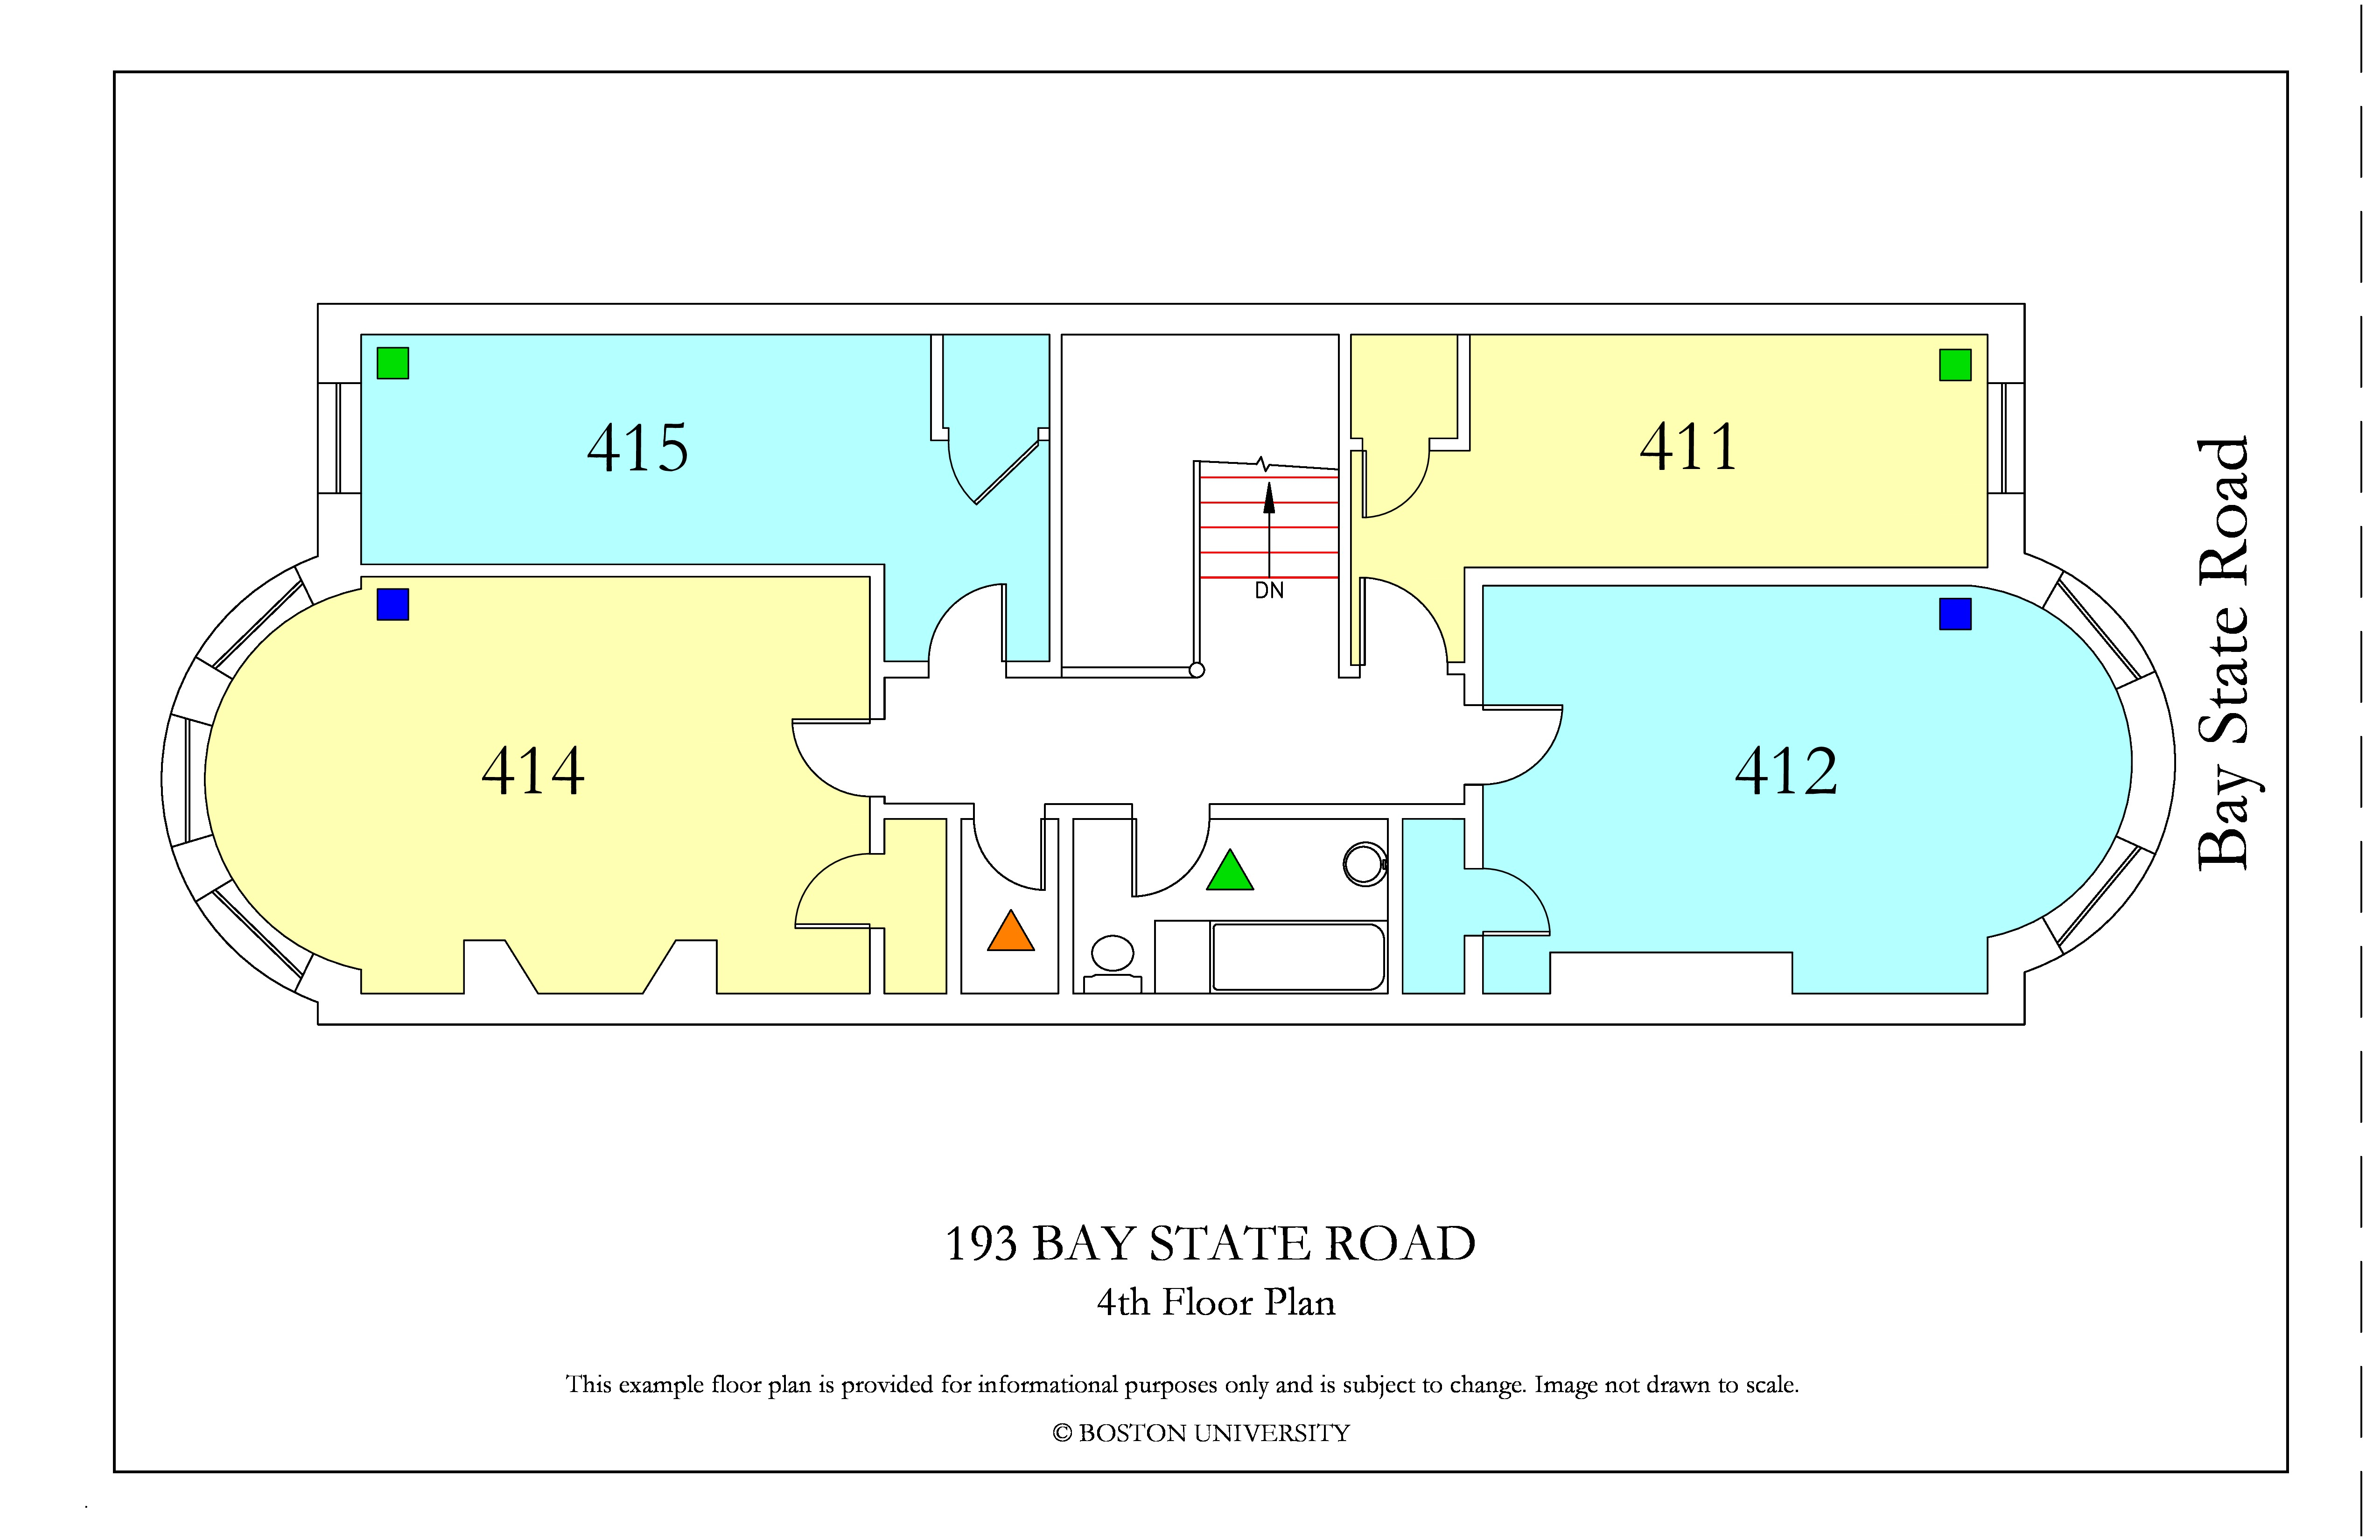 193 Bay State Road_4thFloor-pag